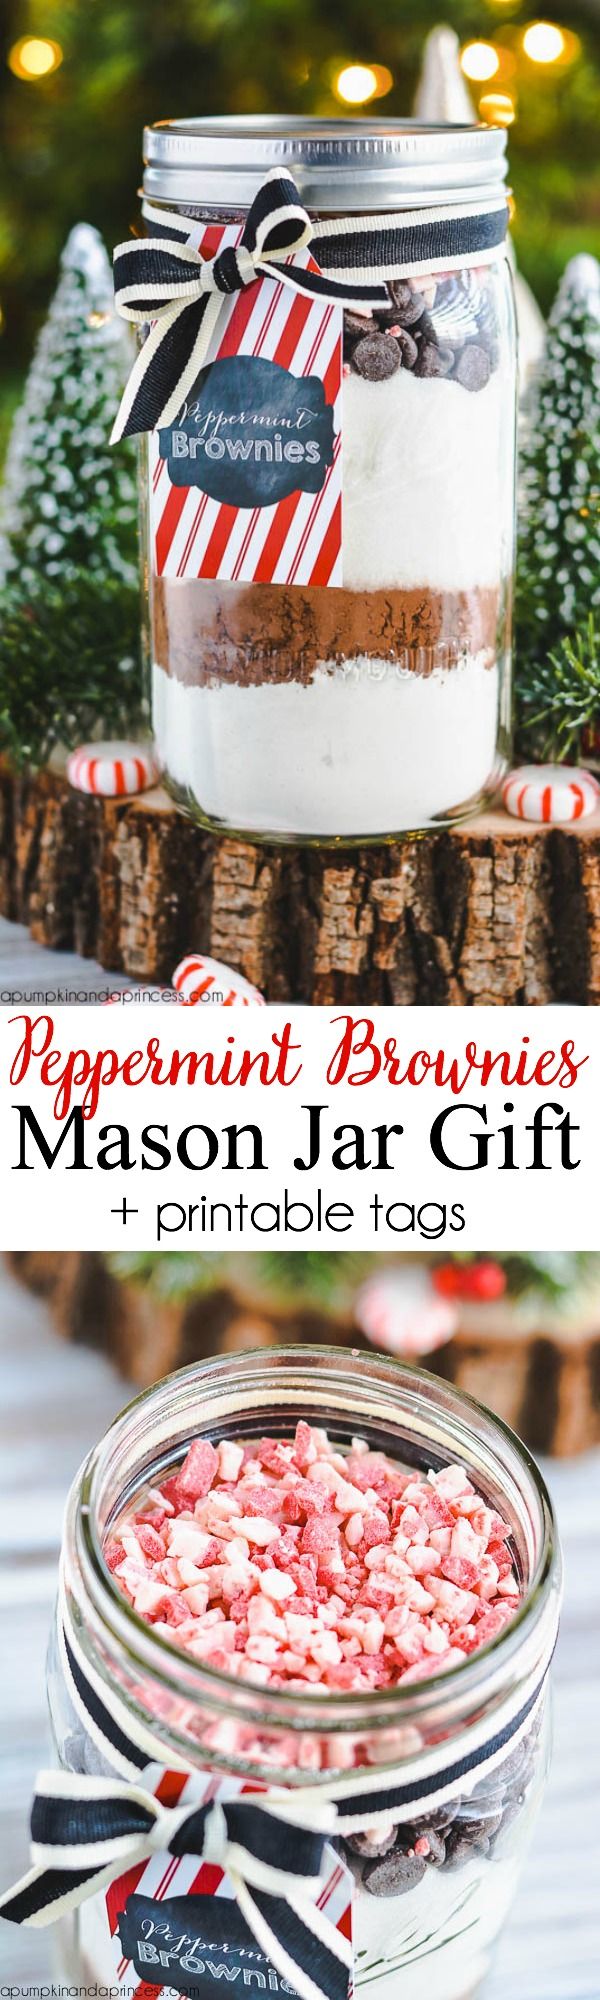 Peppermint-Brownie-Mix-Mason-Jar-Gift